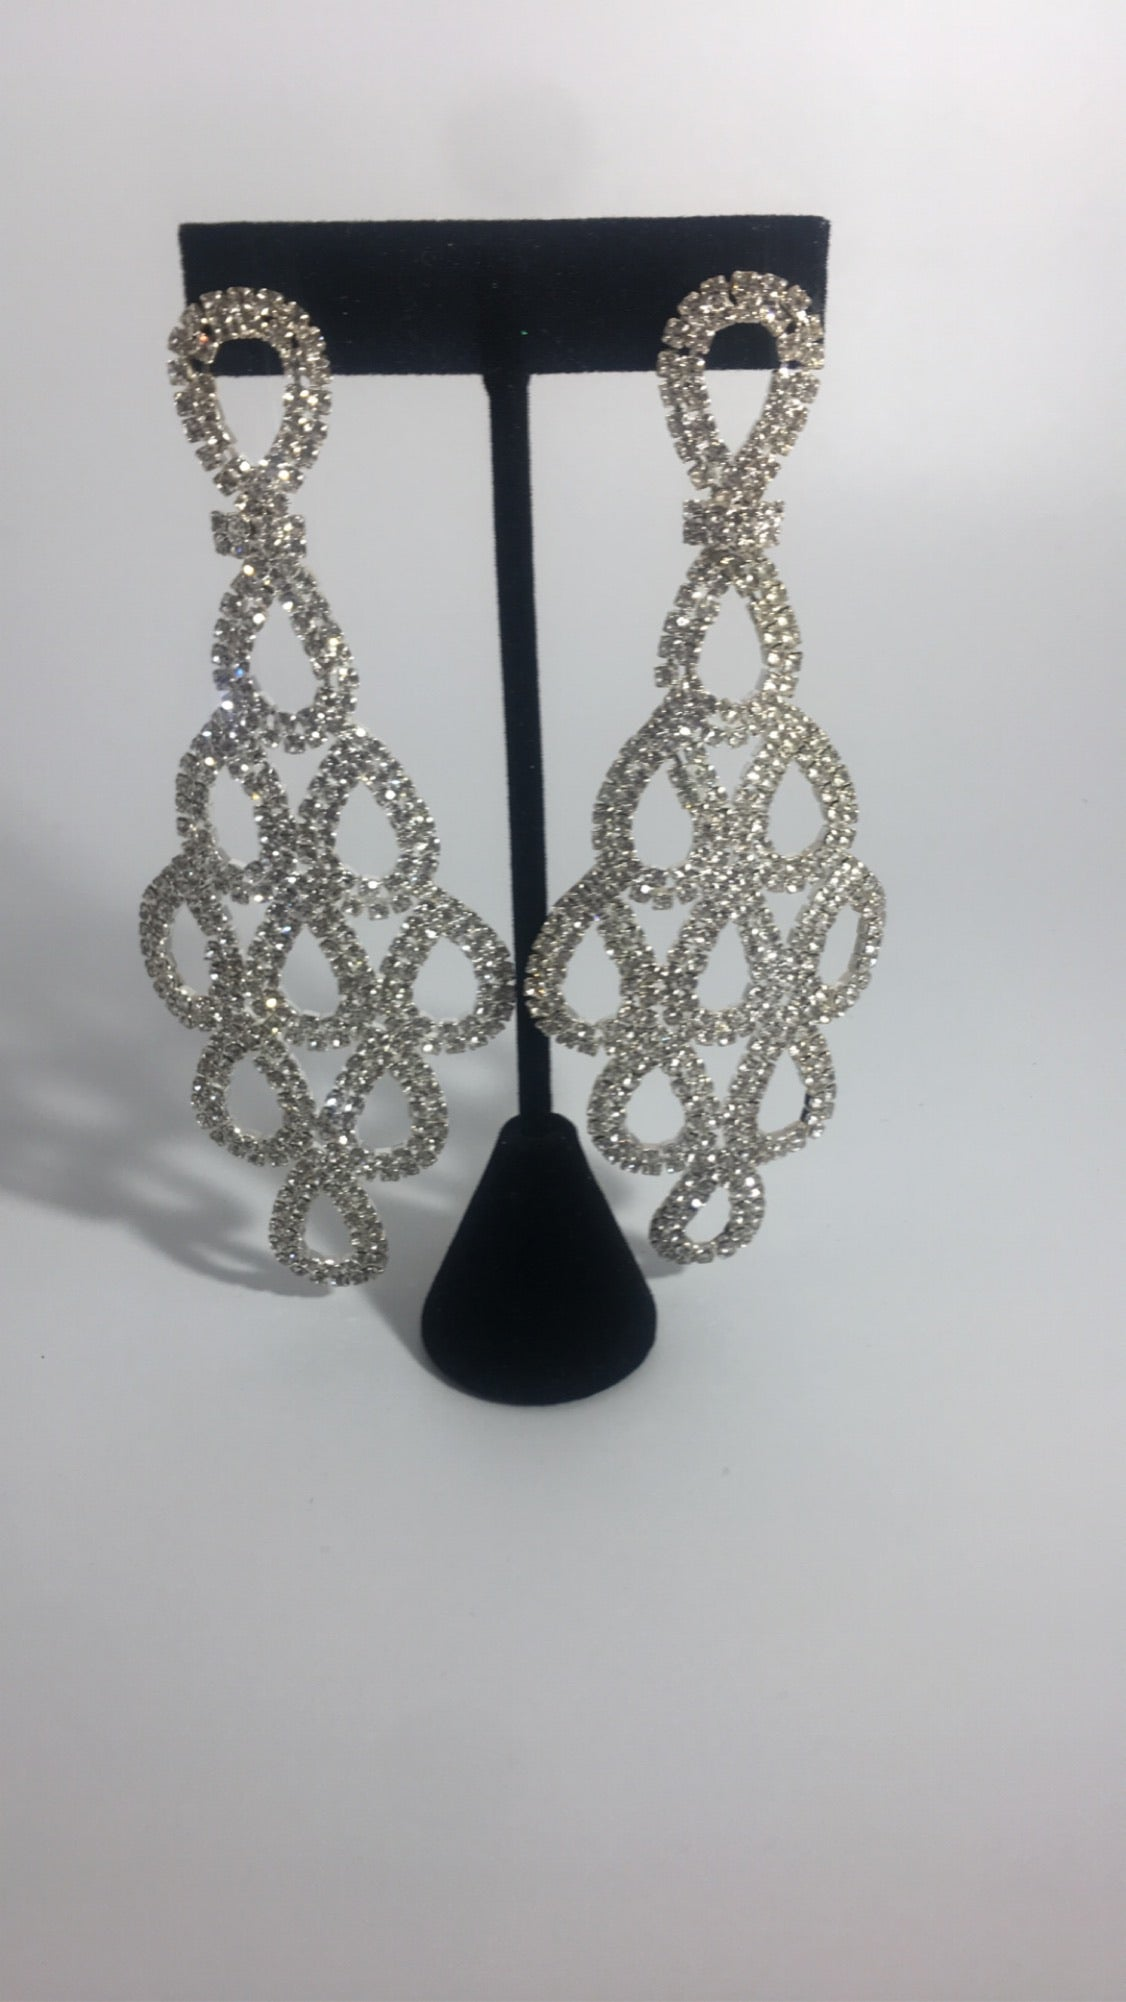 Diamond Drip earrings